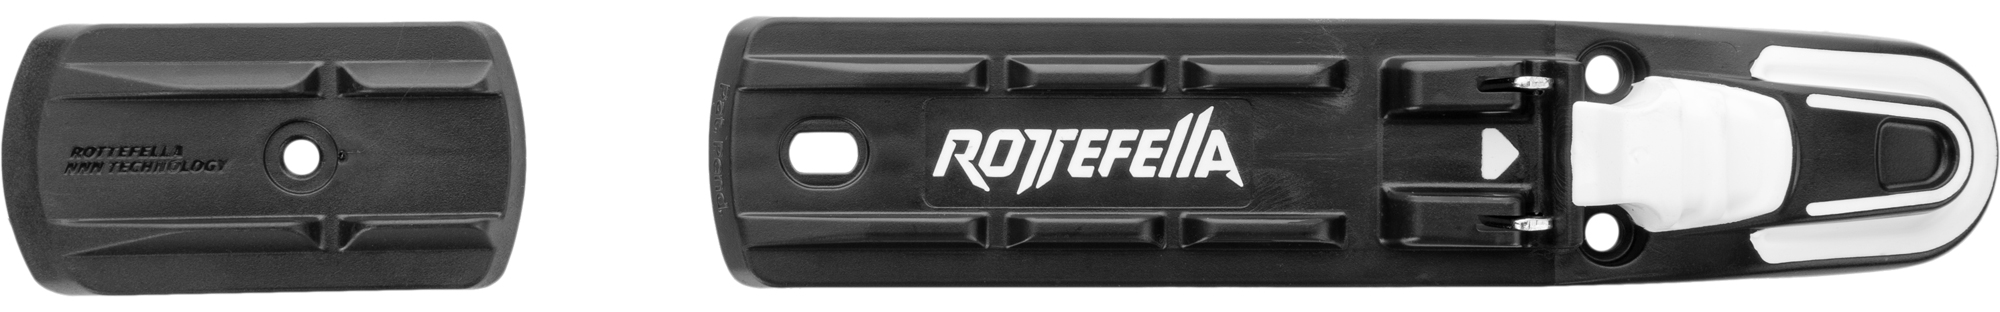 Rottefella Крепления для лыж Rottefella Step In robots in disguise 1 step changers